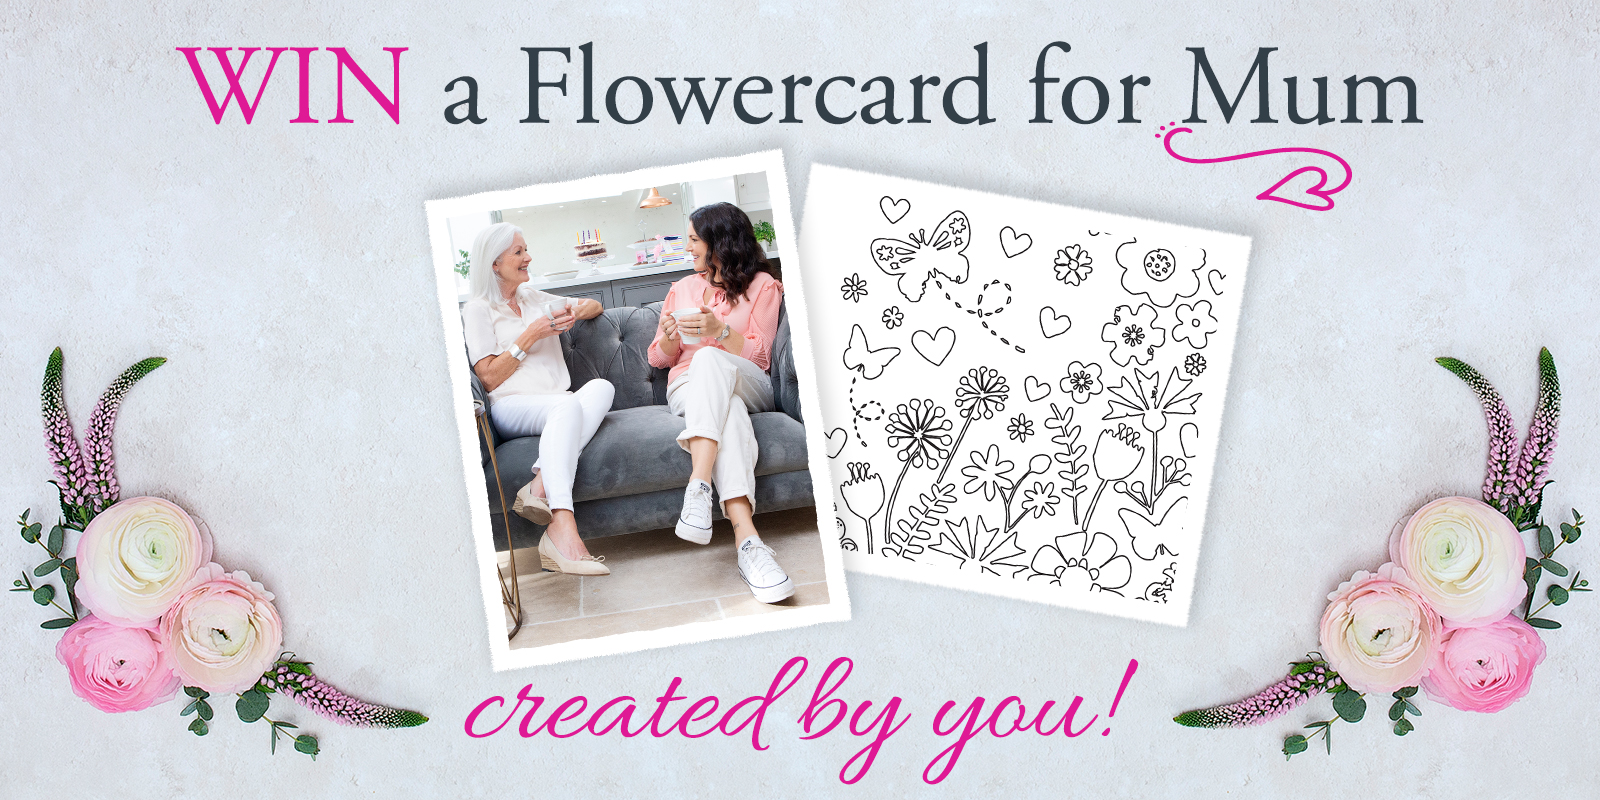 Win a Flowercard for Mum